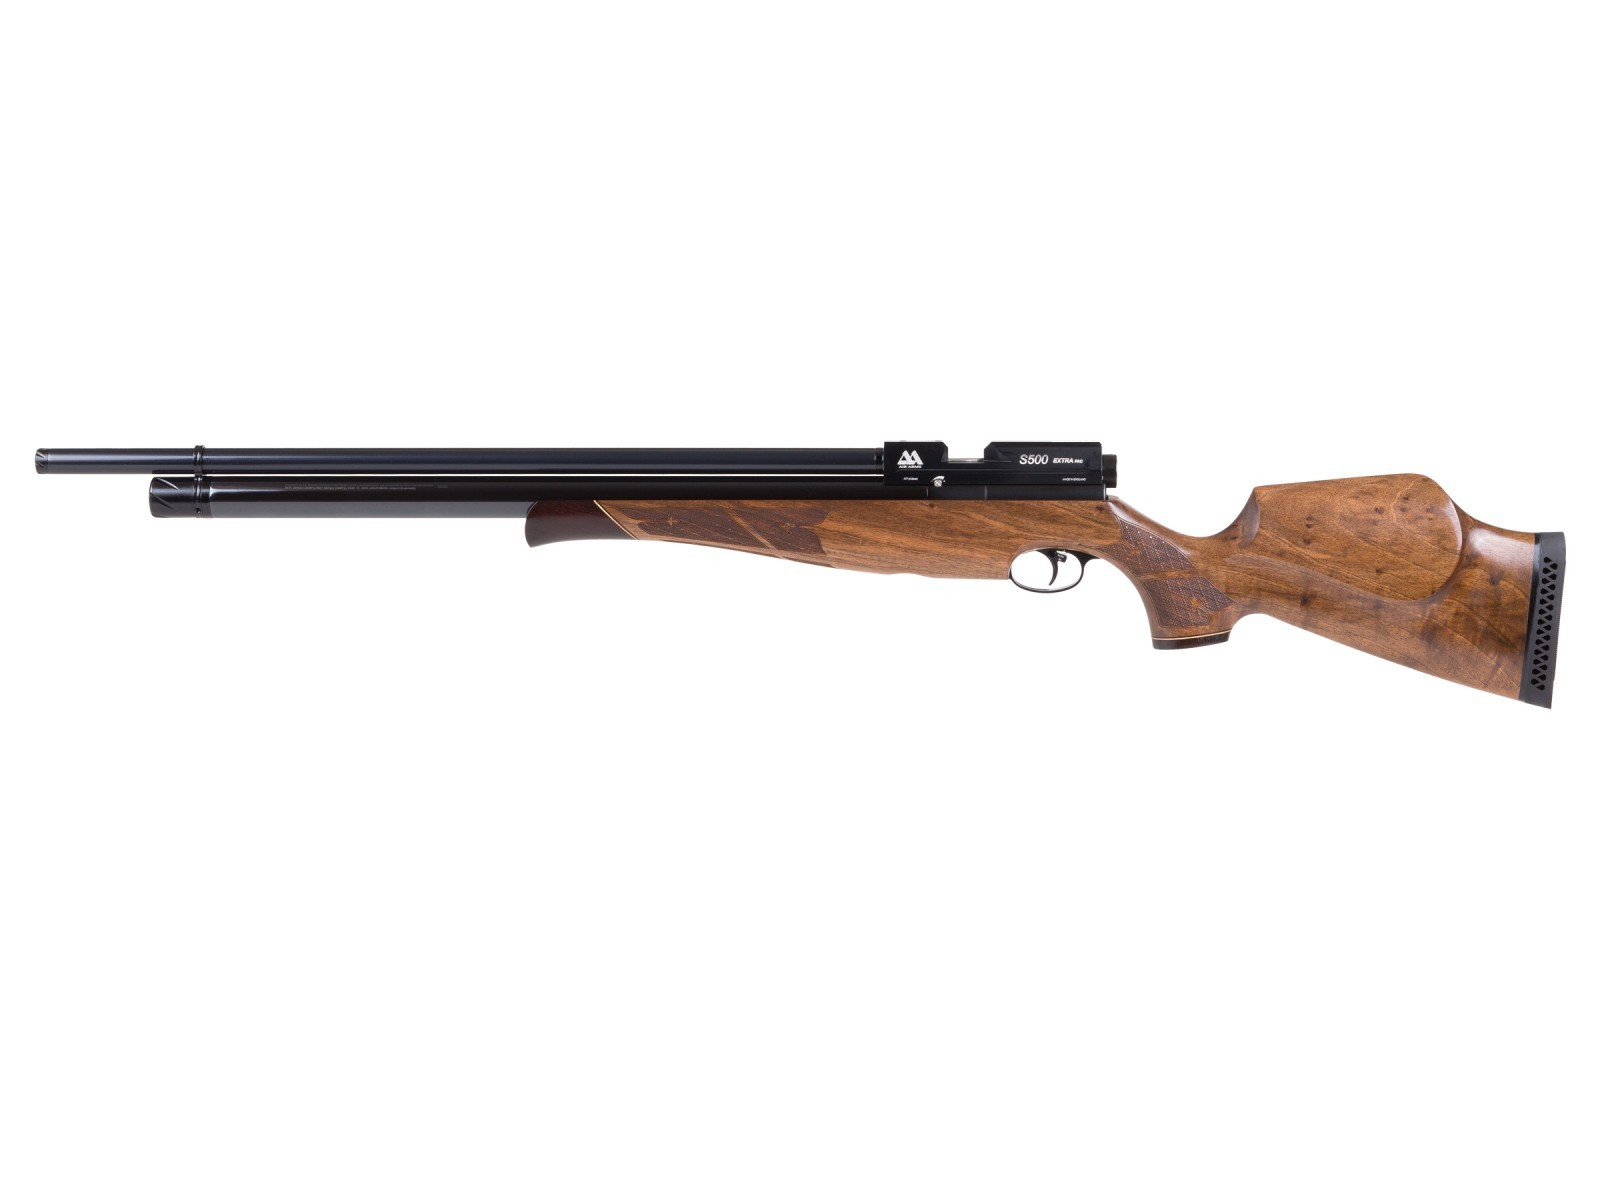 Air Arms S500 Xtra FAC Walnut PCP Air Rifle 0.22